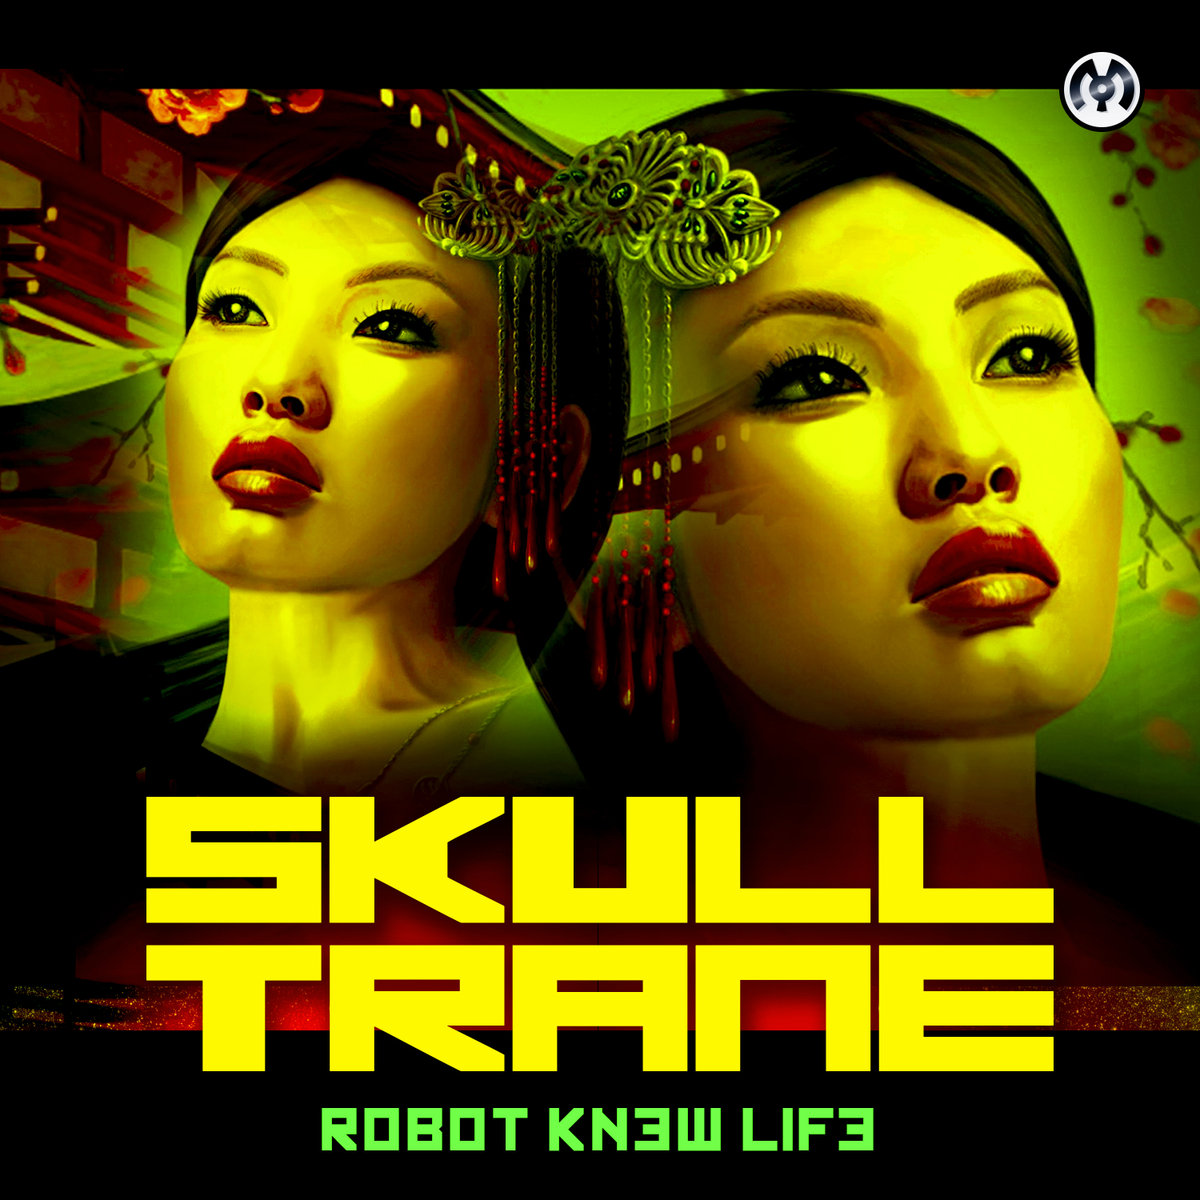 Skulltrane - Unlike Me @ 'Robot Knew Life' album (electronic, dubstep)